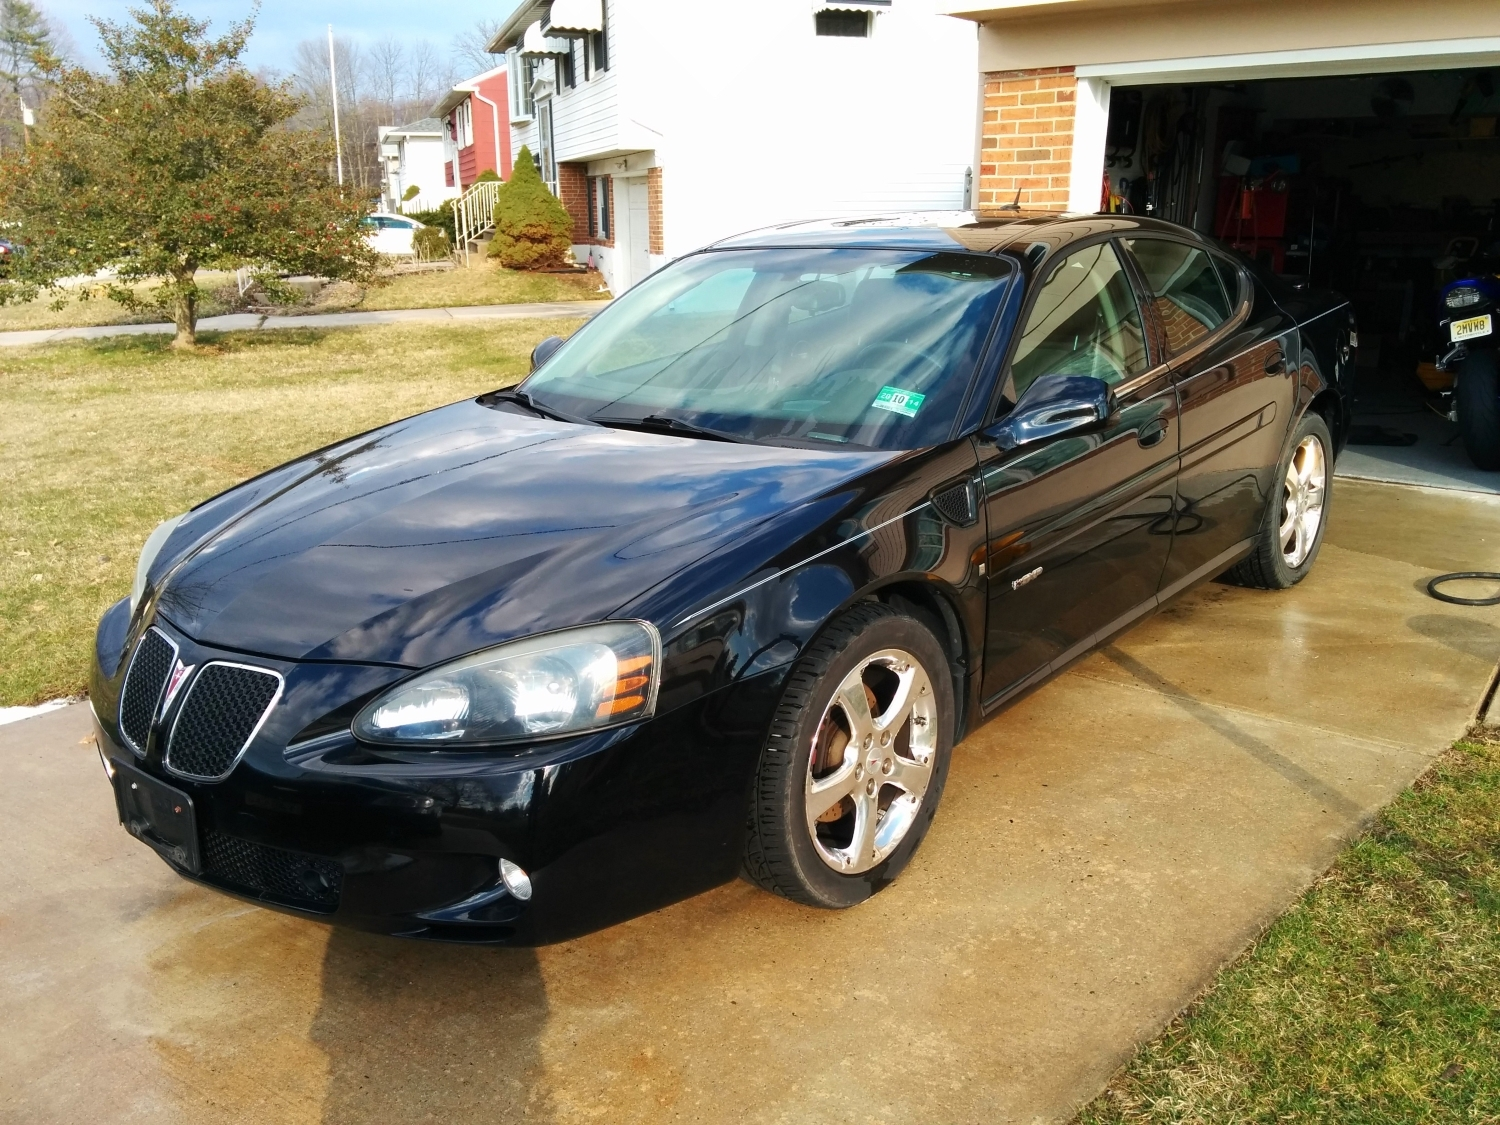 Black 2007 Pontiac Grand Prix GXP